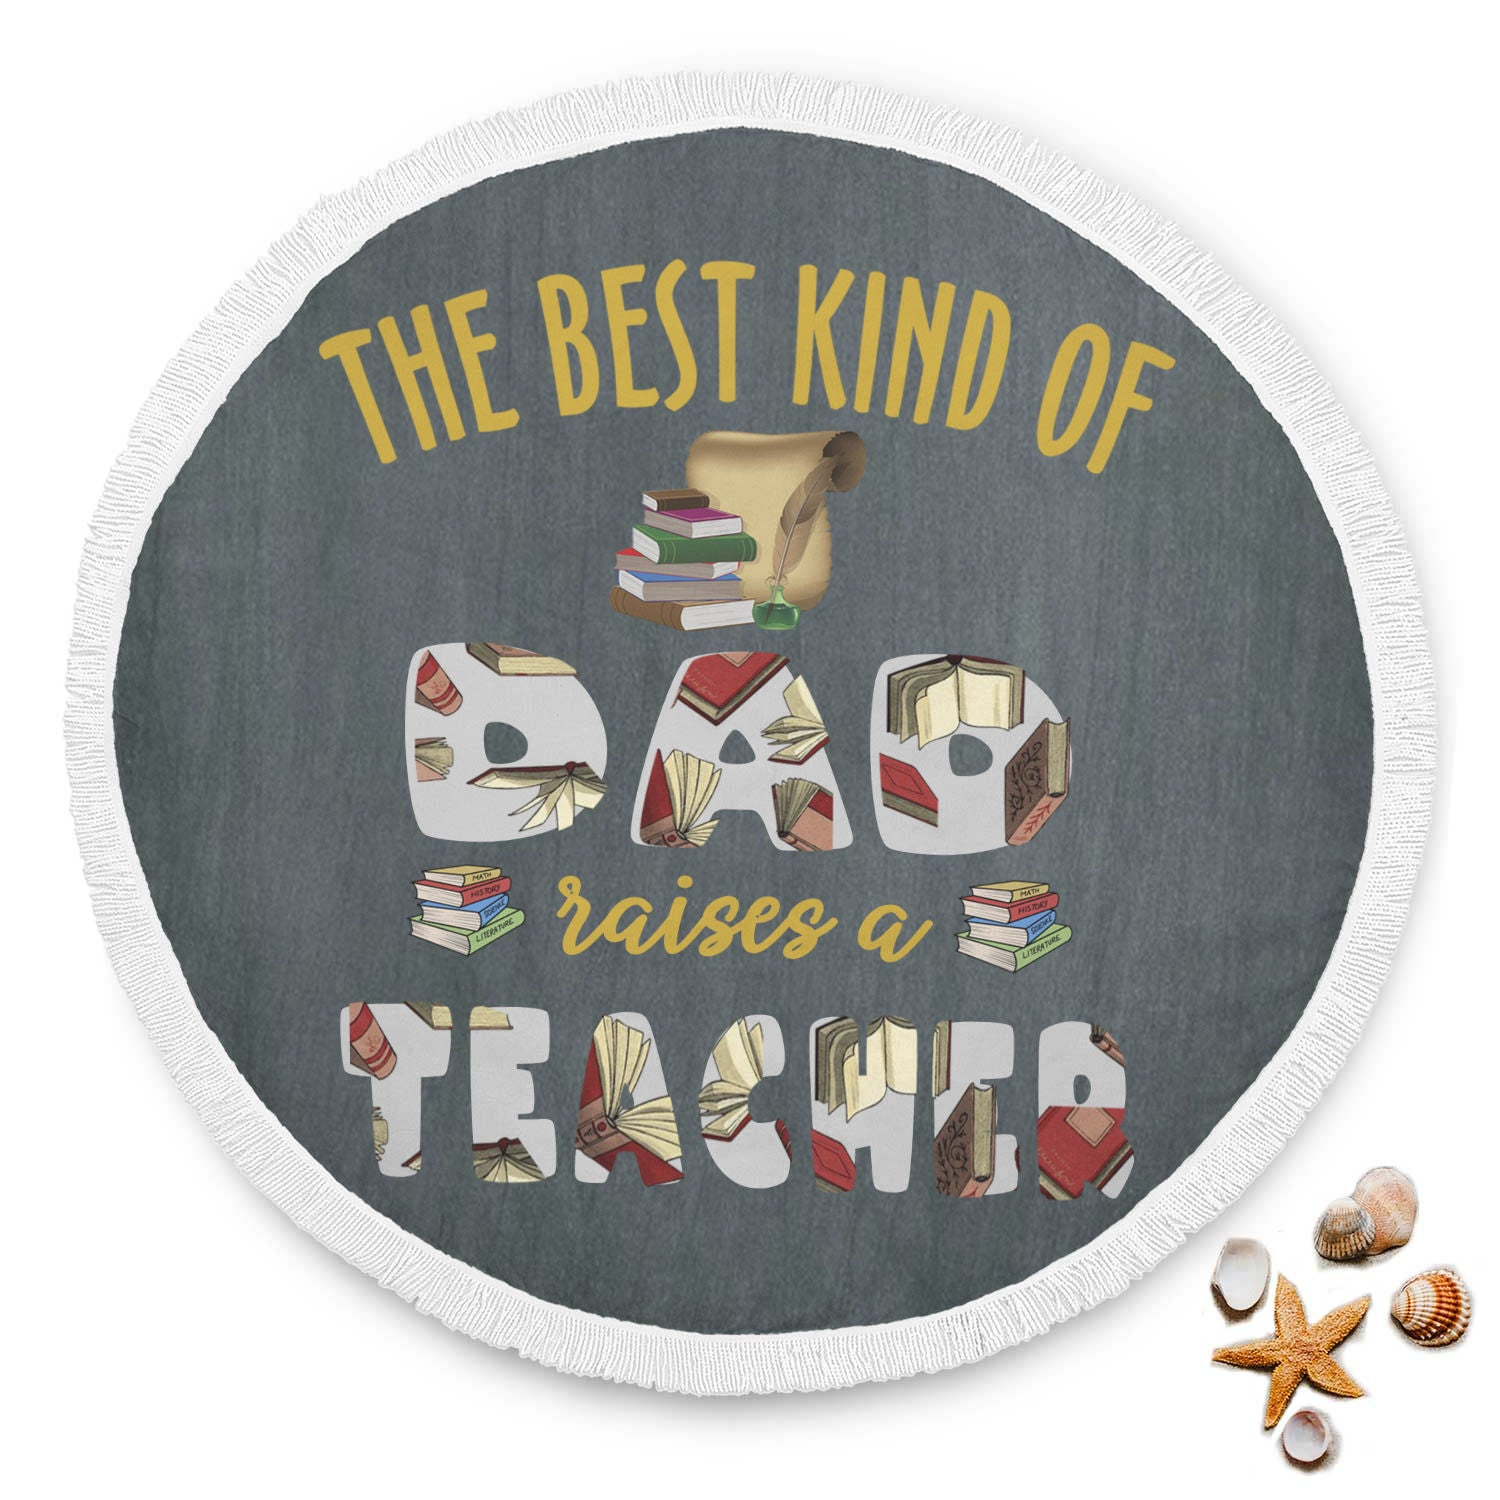 VIRA beach blanket for awesome teachers & dads